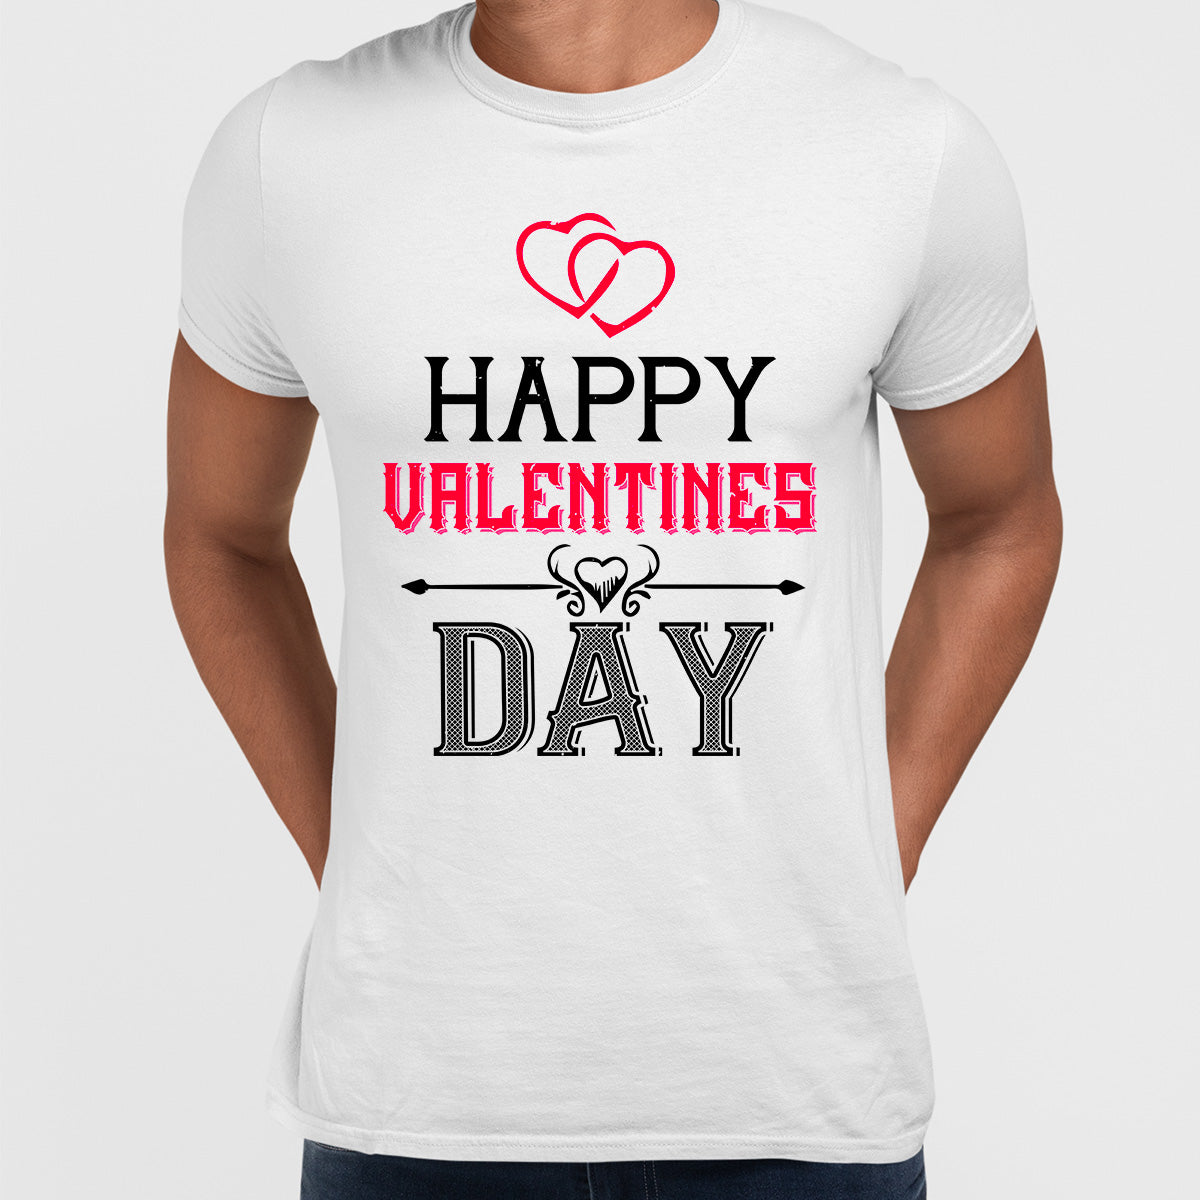 Happy valentine day - valentine's day Unisex T-shirt edition